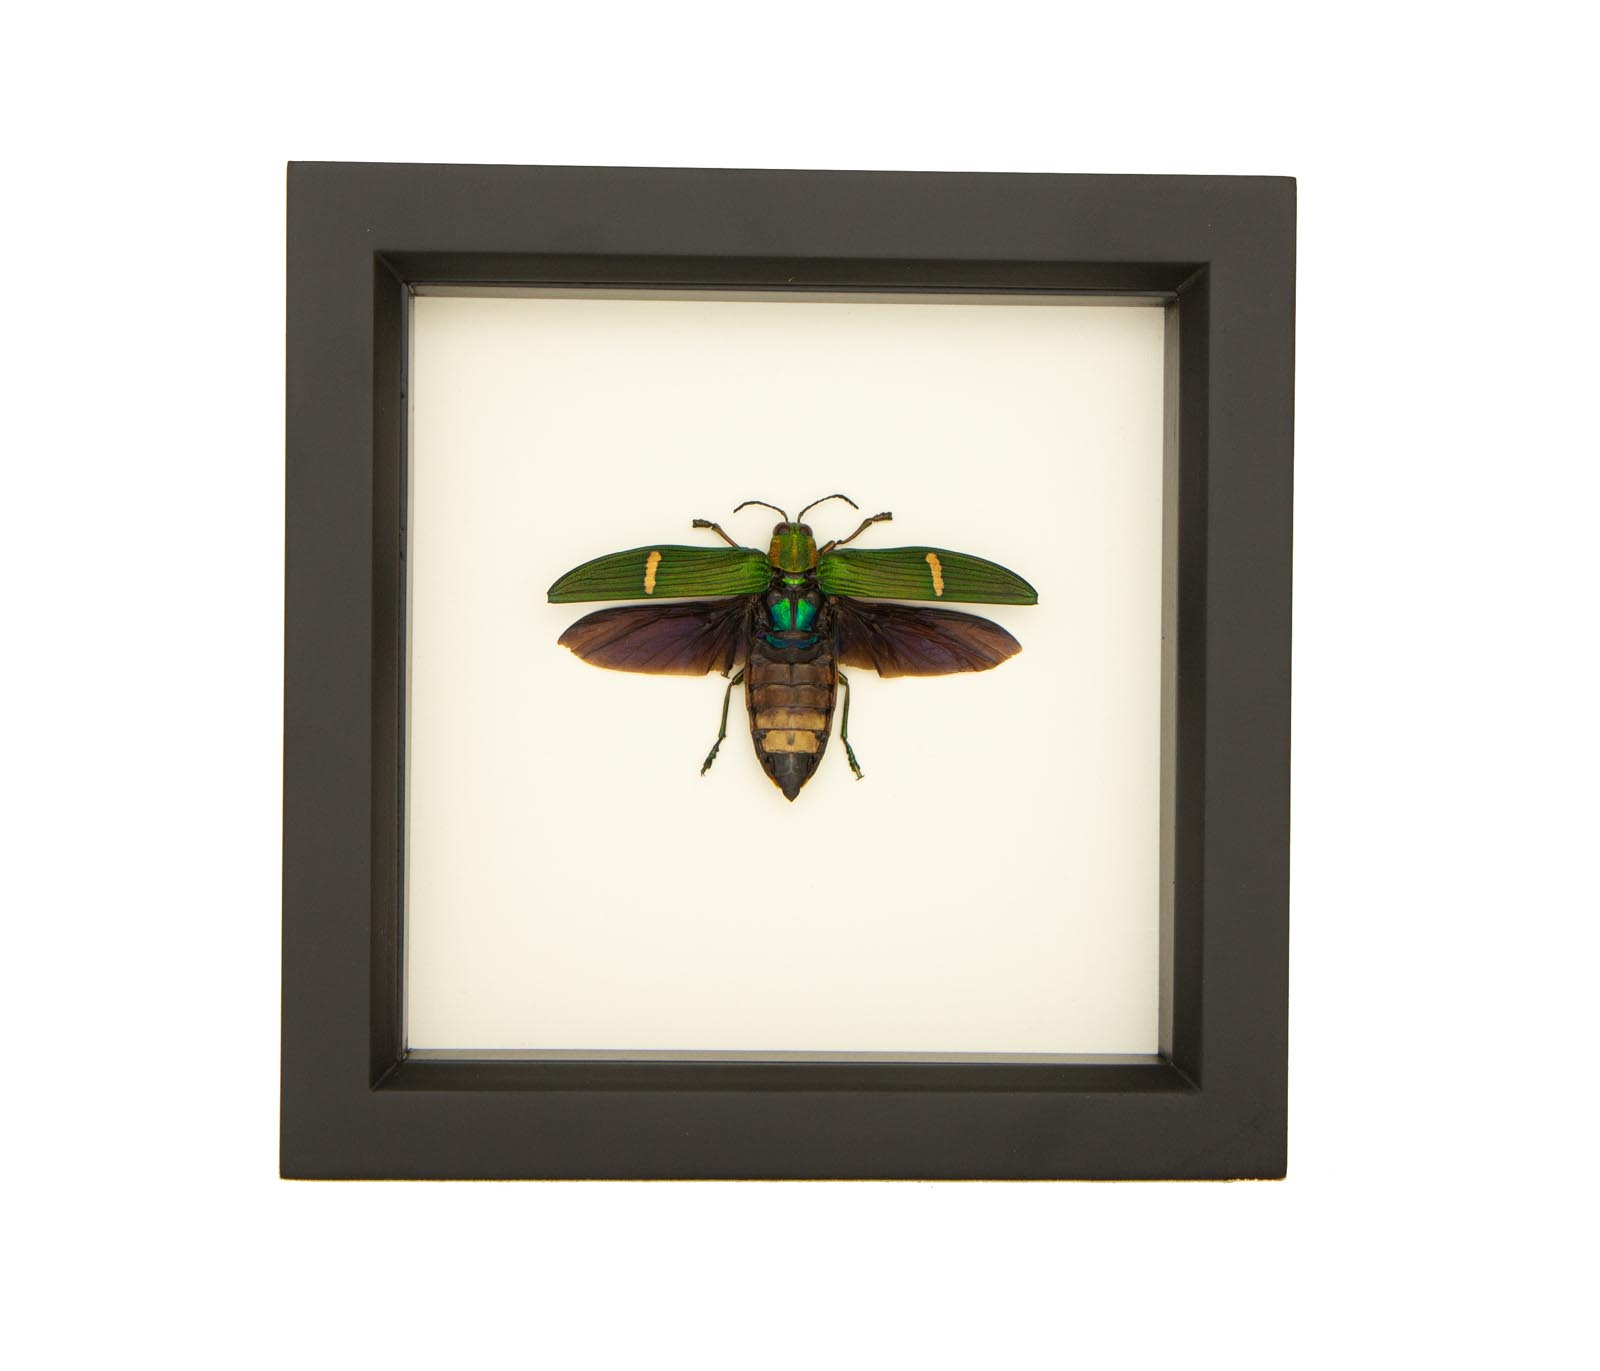 - NEW - Framed Opulent Jewel Beetle